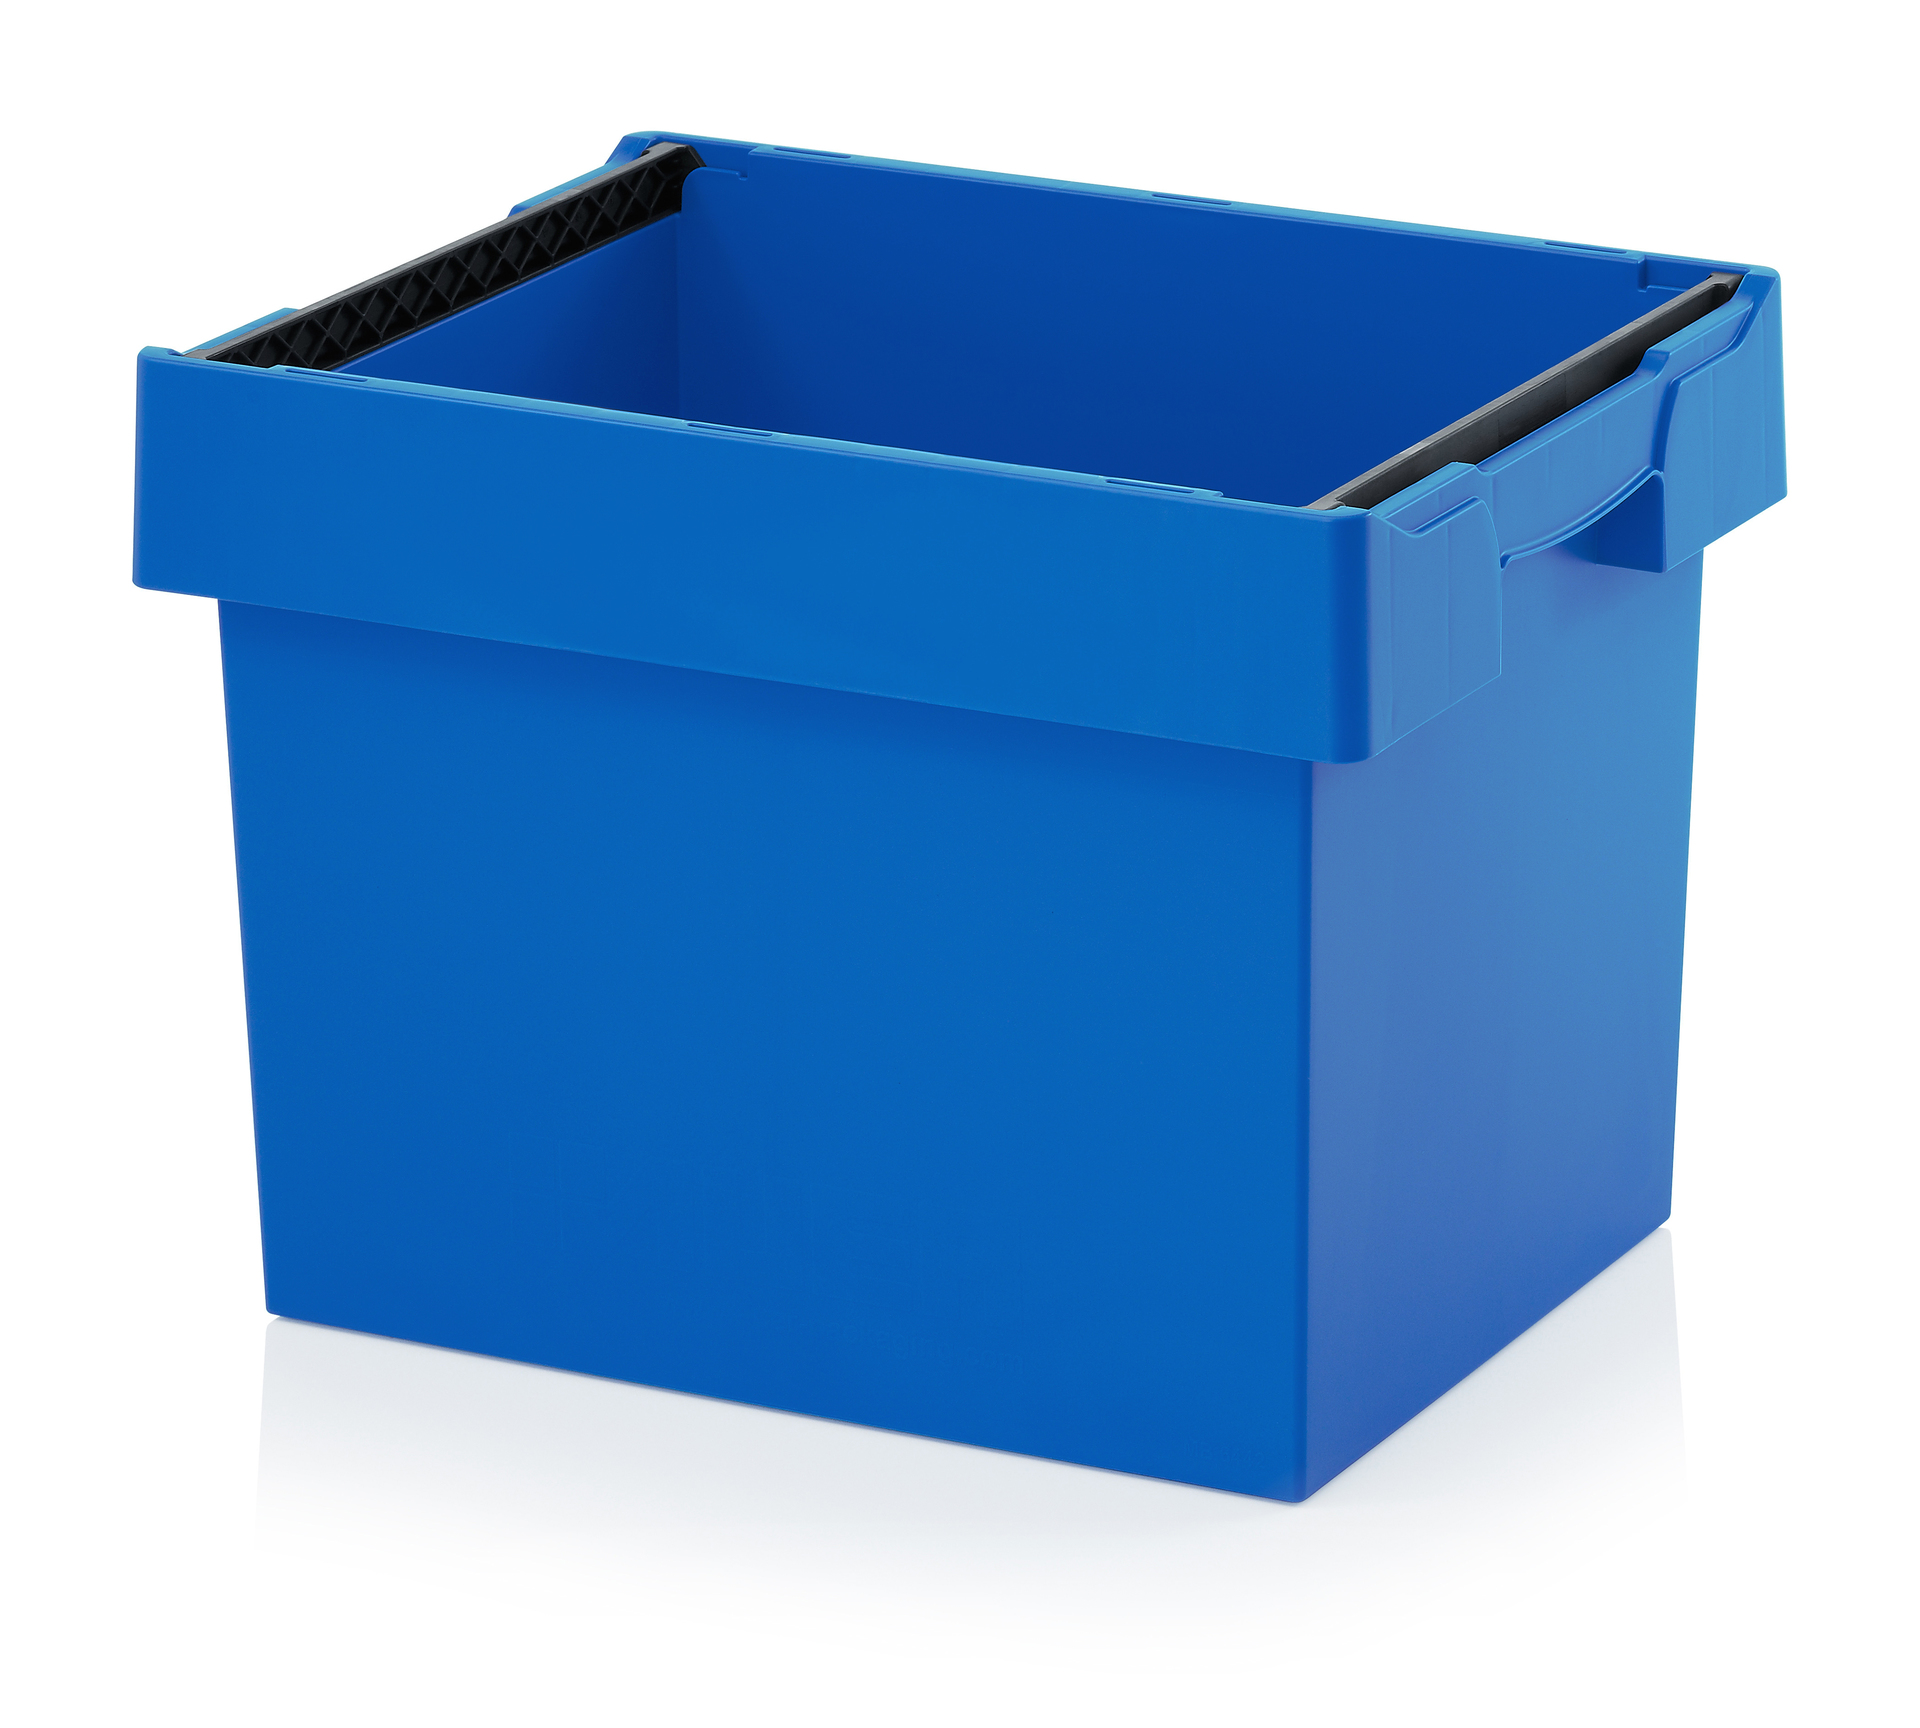 RC6420F_1 Reusable Containers - Plastic Mouldings Northern